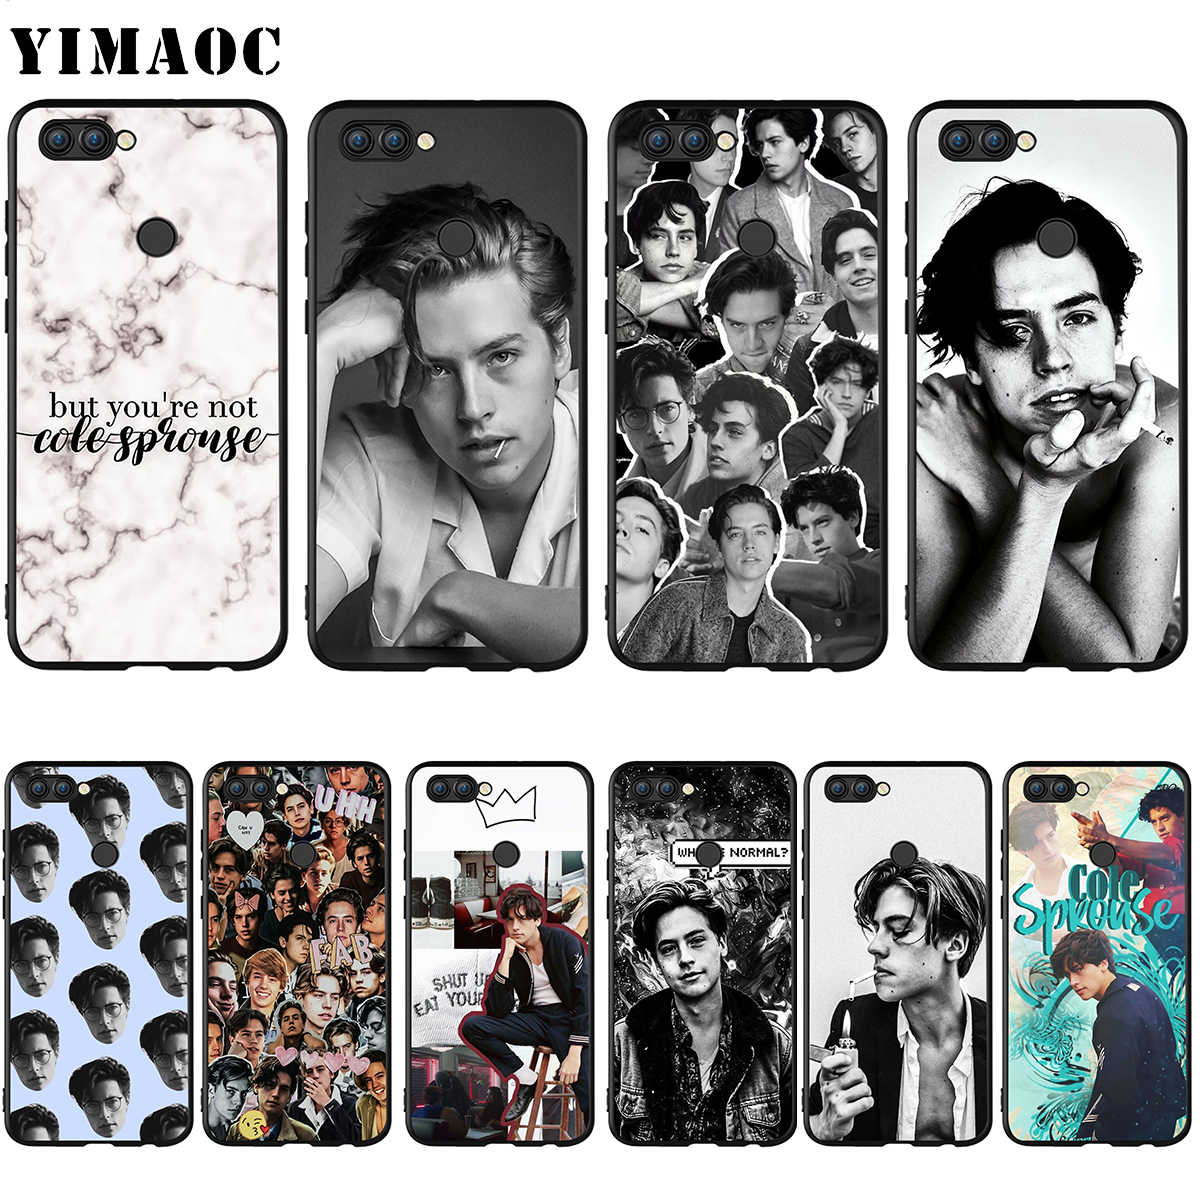 YIMAOC Cole Sprouse Silicone Case for Huawei Honor Mate P smart Y7 Y9 8C 20 10 8x Nova 3i 3 Lite Pro Prime 2018 2019